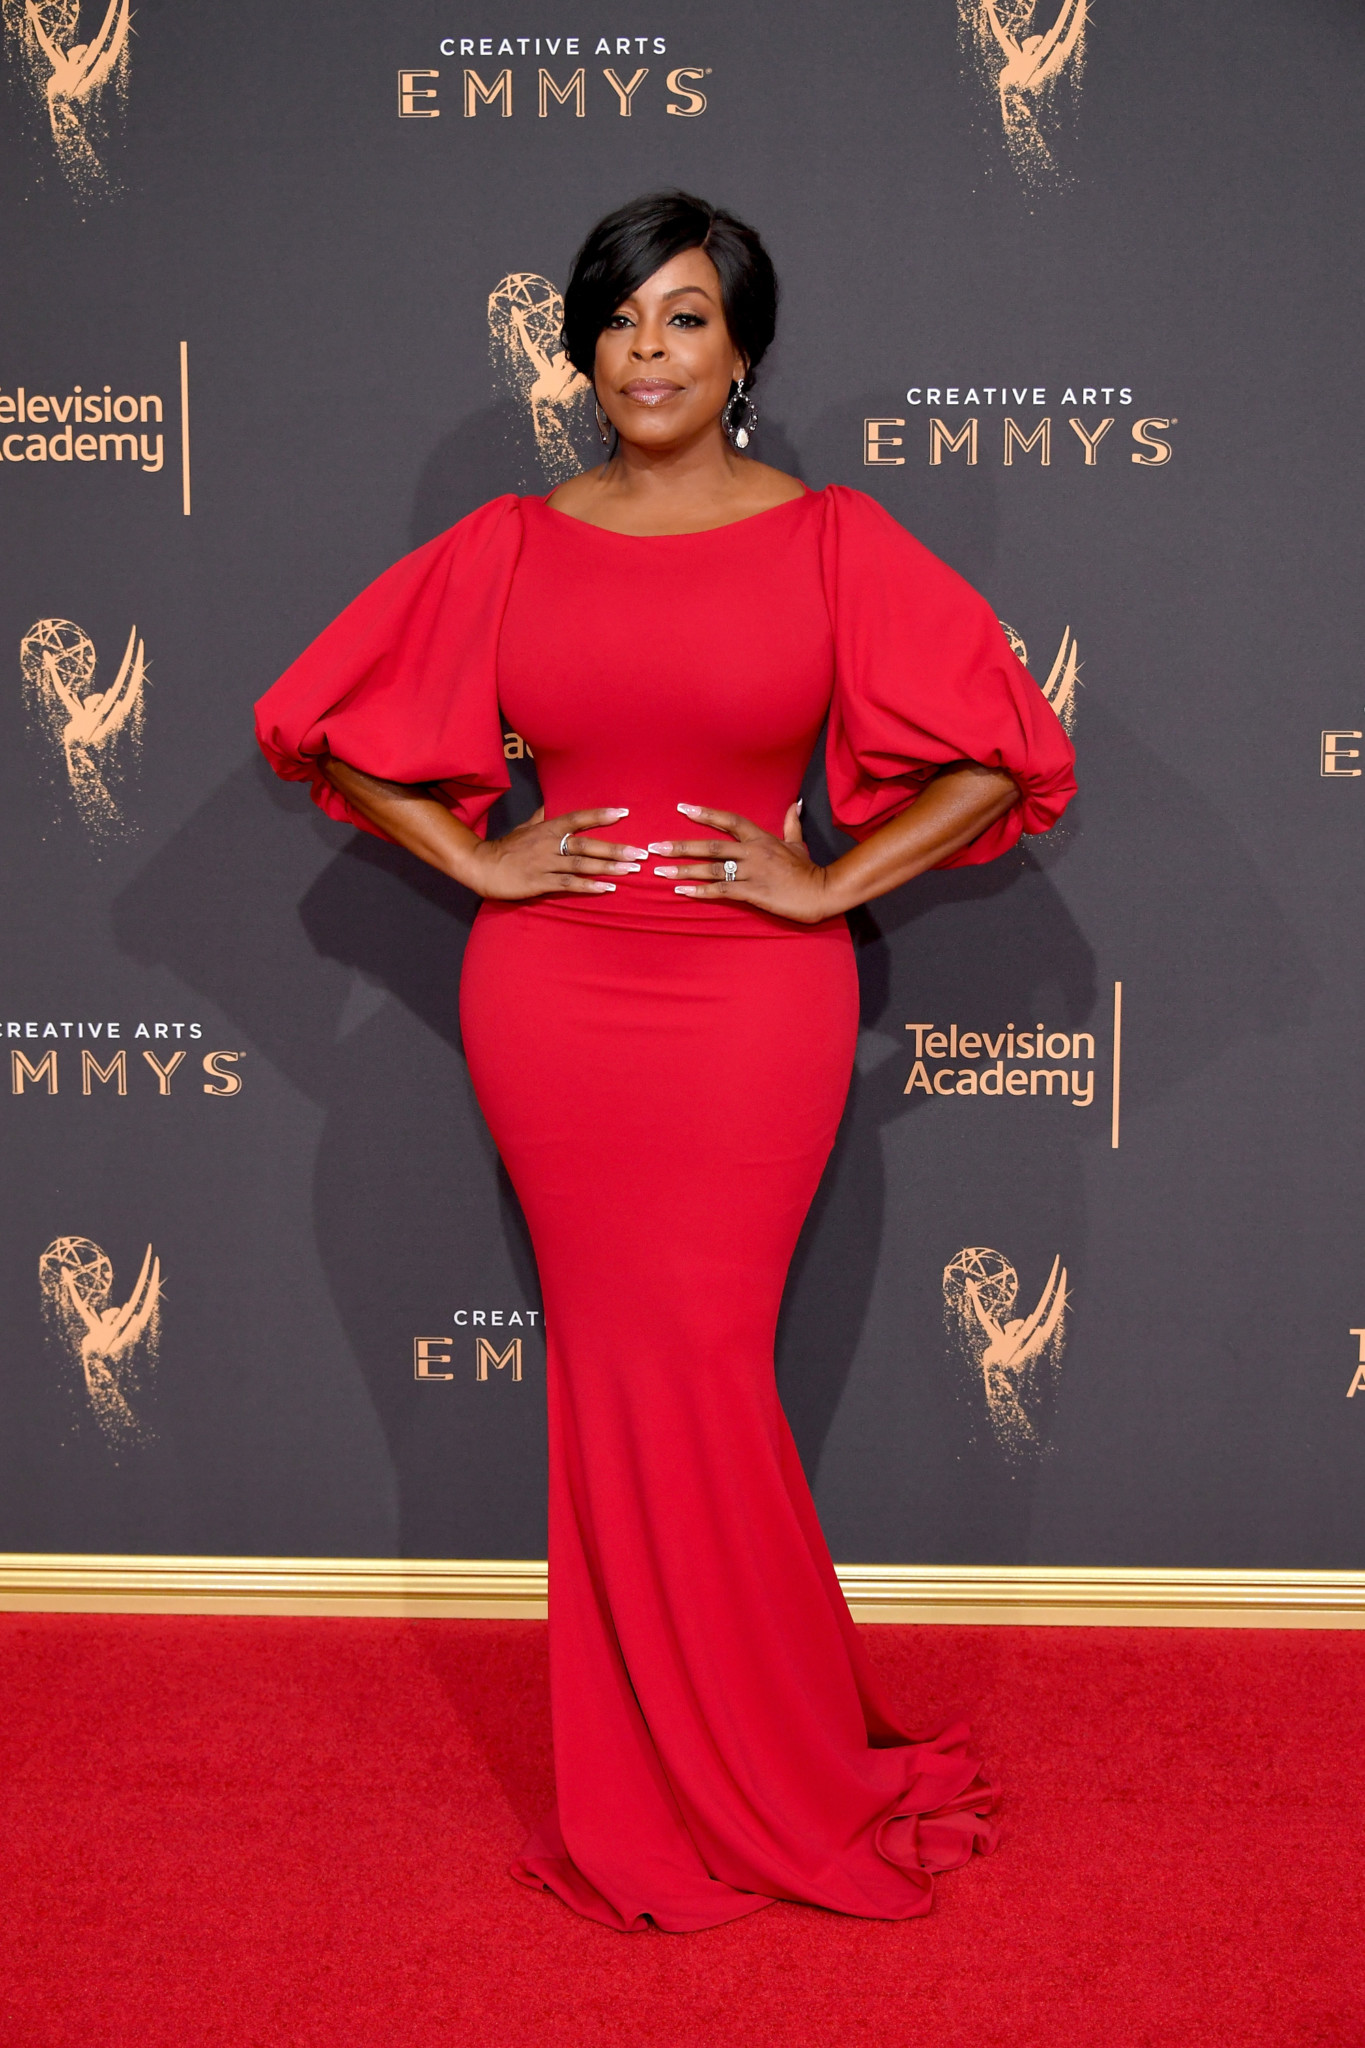 With An Inspiring Speech, Ava DuVernay Stole The Show At The 2017 Creative Arts Emmy Awards| See Photos